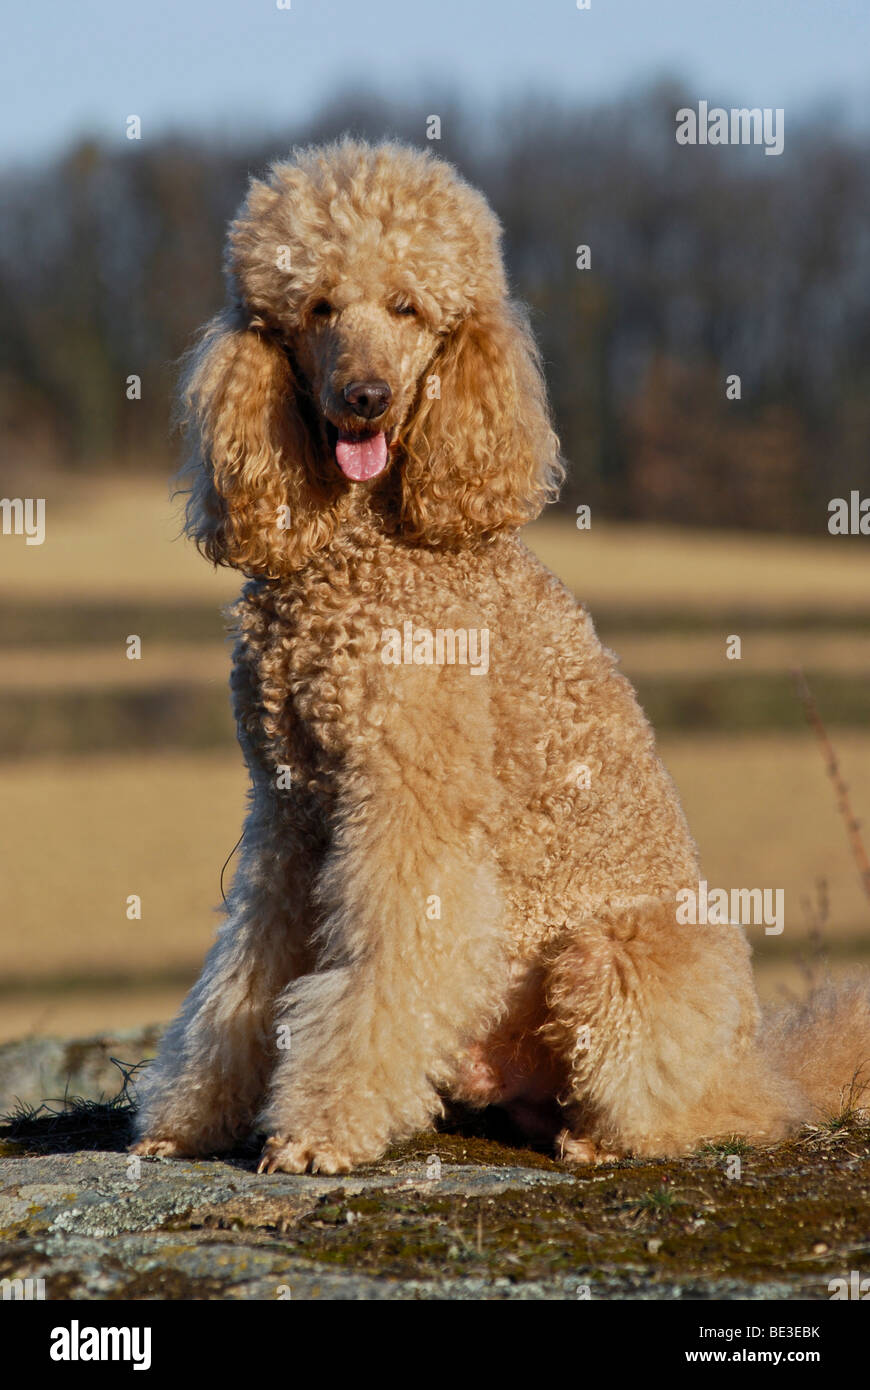 Sitting Large Poodle Giant Poodle Stock Photo 25892711 Alamy